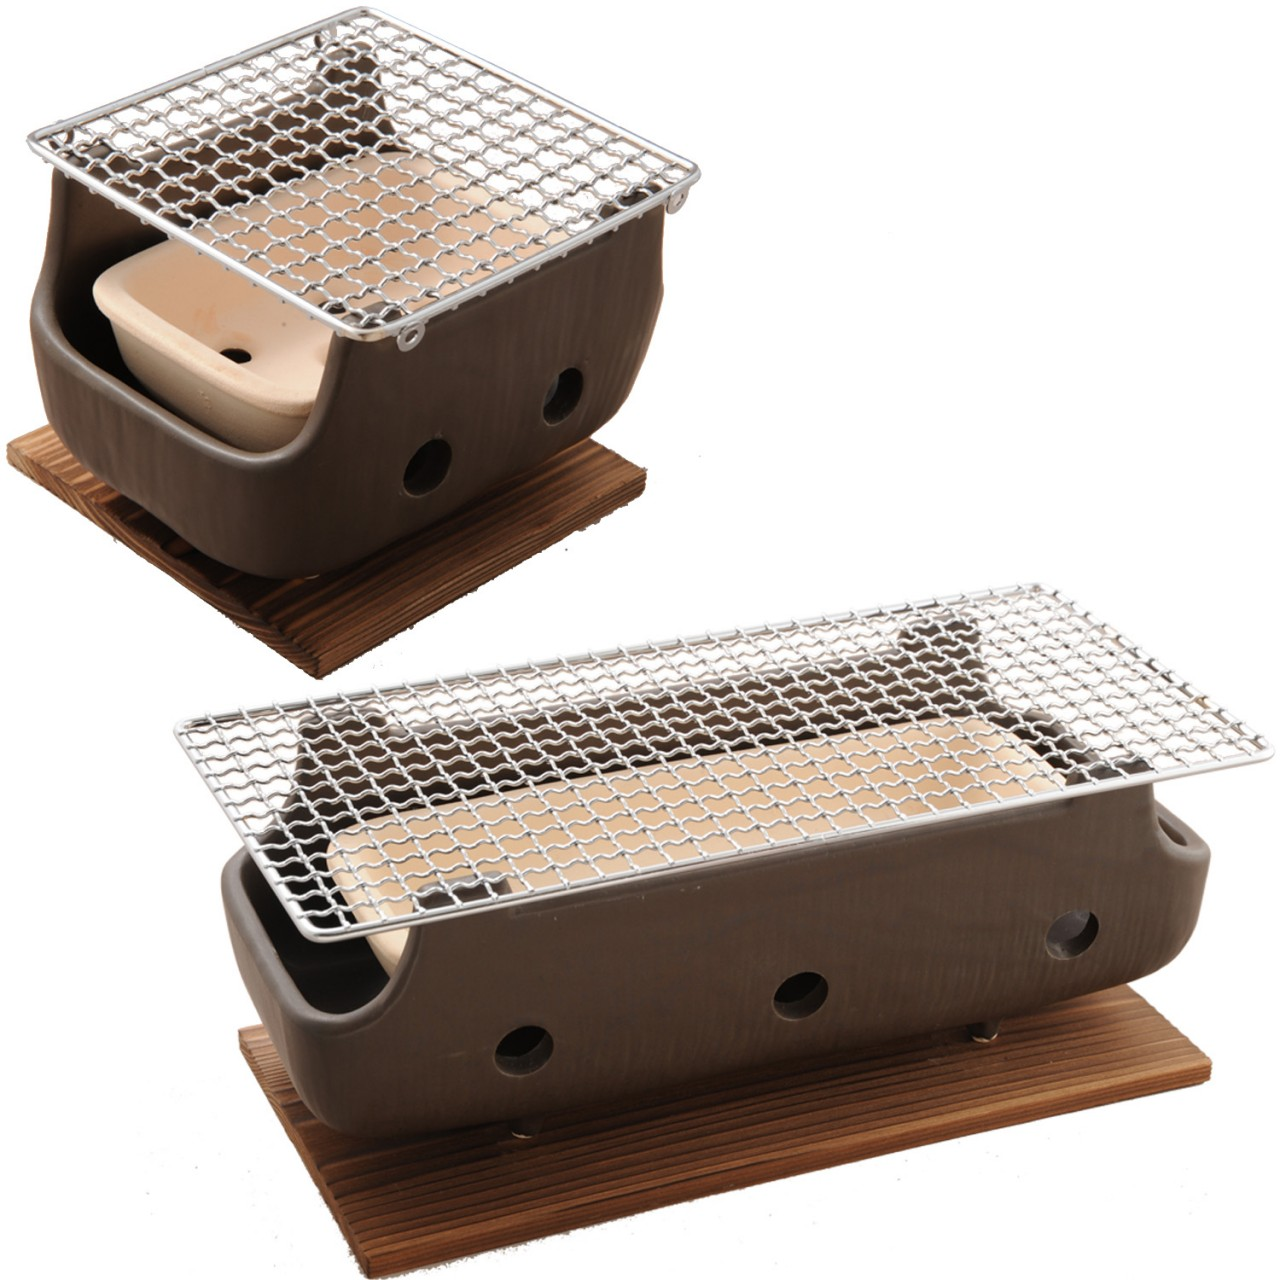 Home grills tabletop charcoal grill 22 grills tabletop charcoal grill - Brown Rect Charcoal Bbq Konro